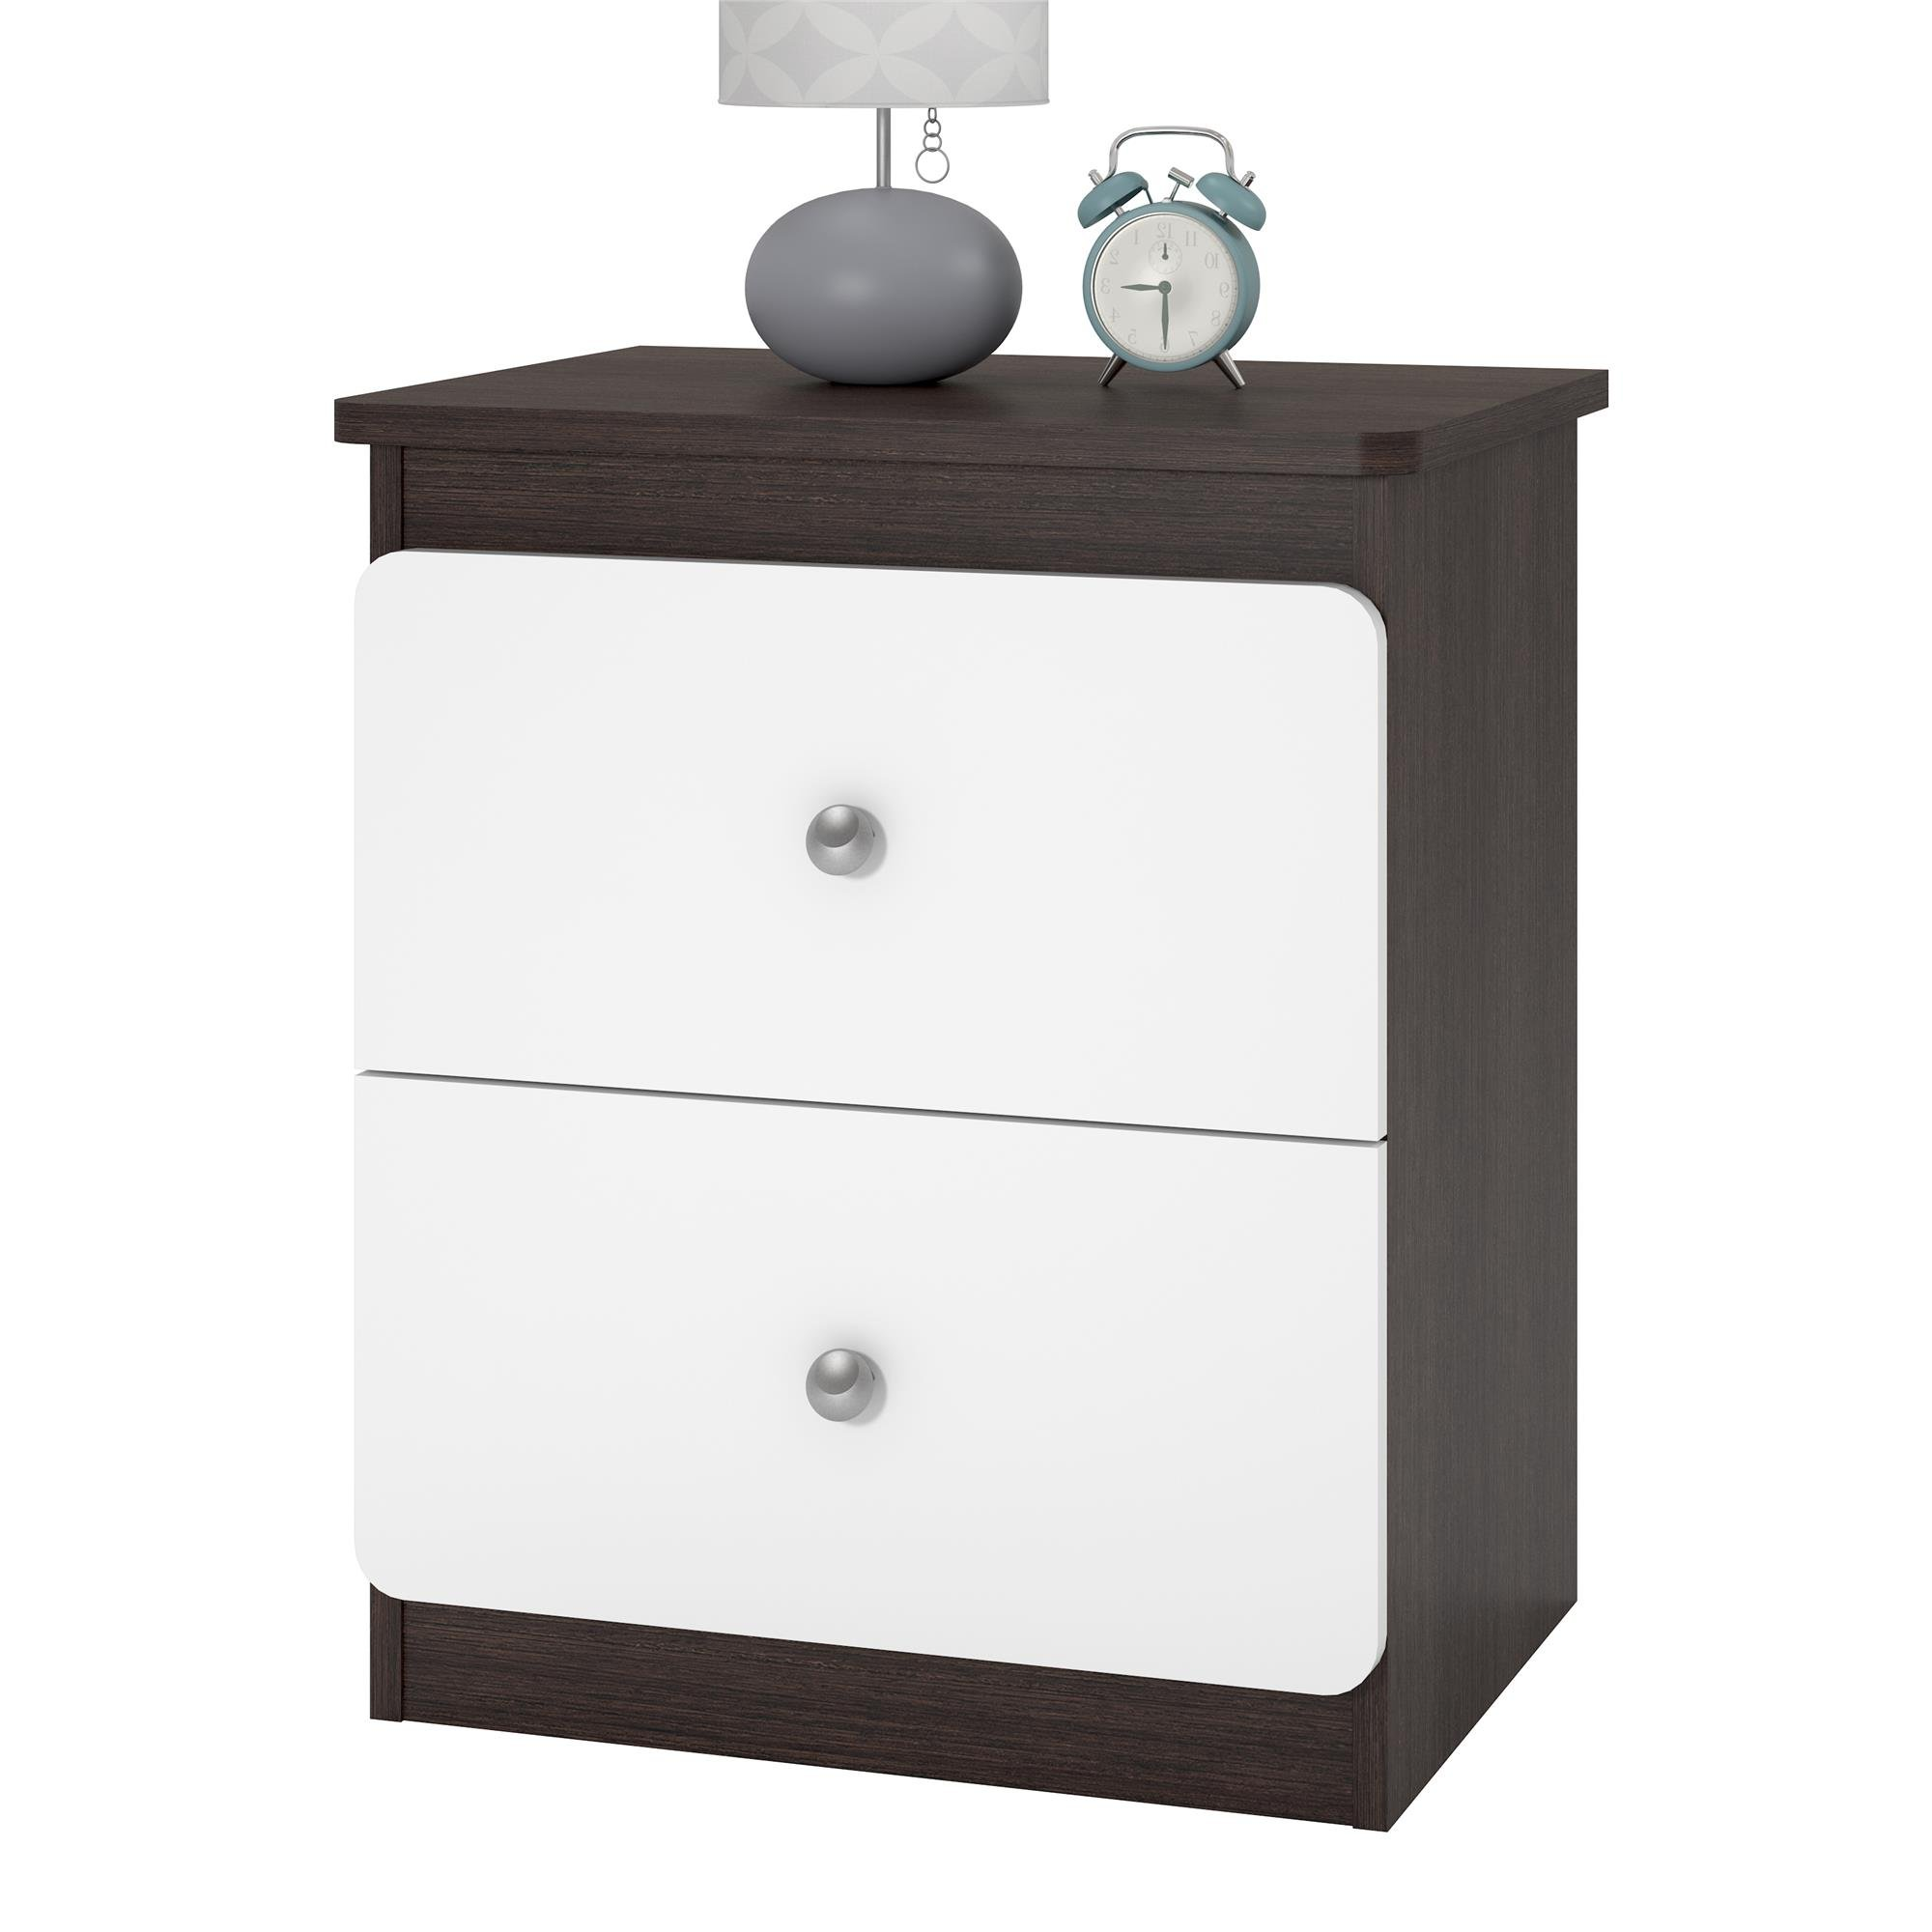 Cosco Products 5953216COM Willow Nightstand, Espresso/White by Cosco Products